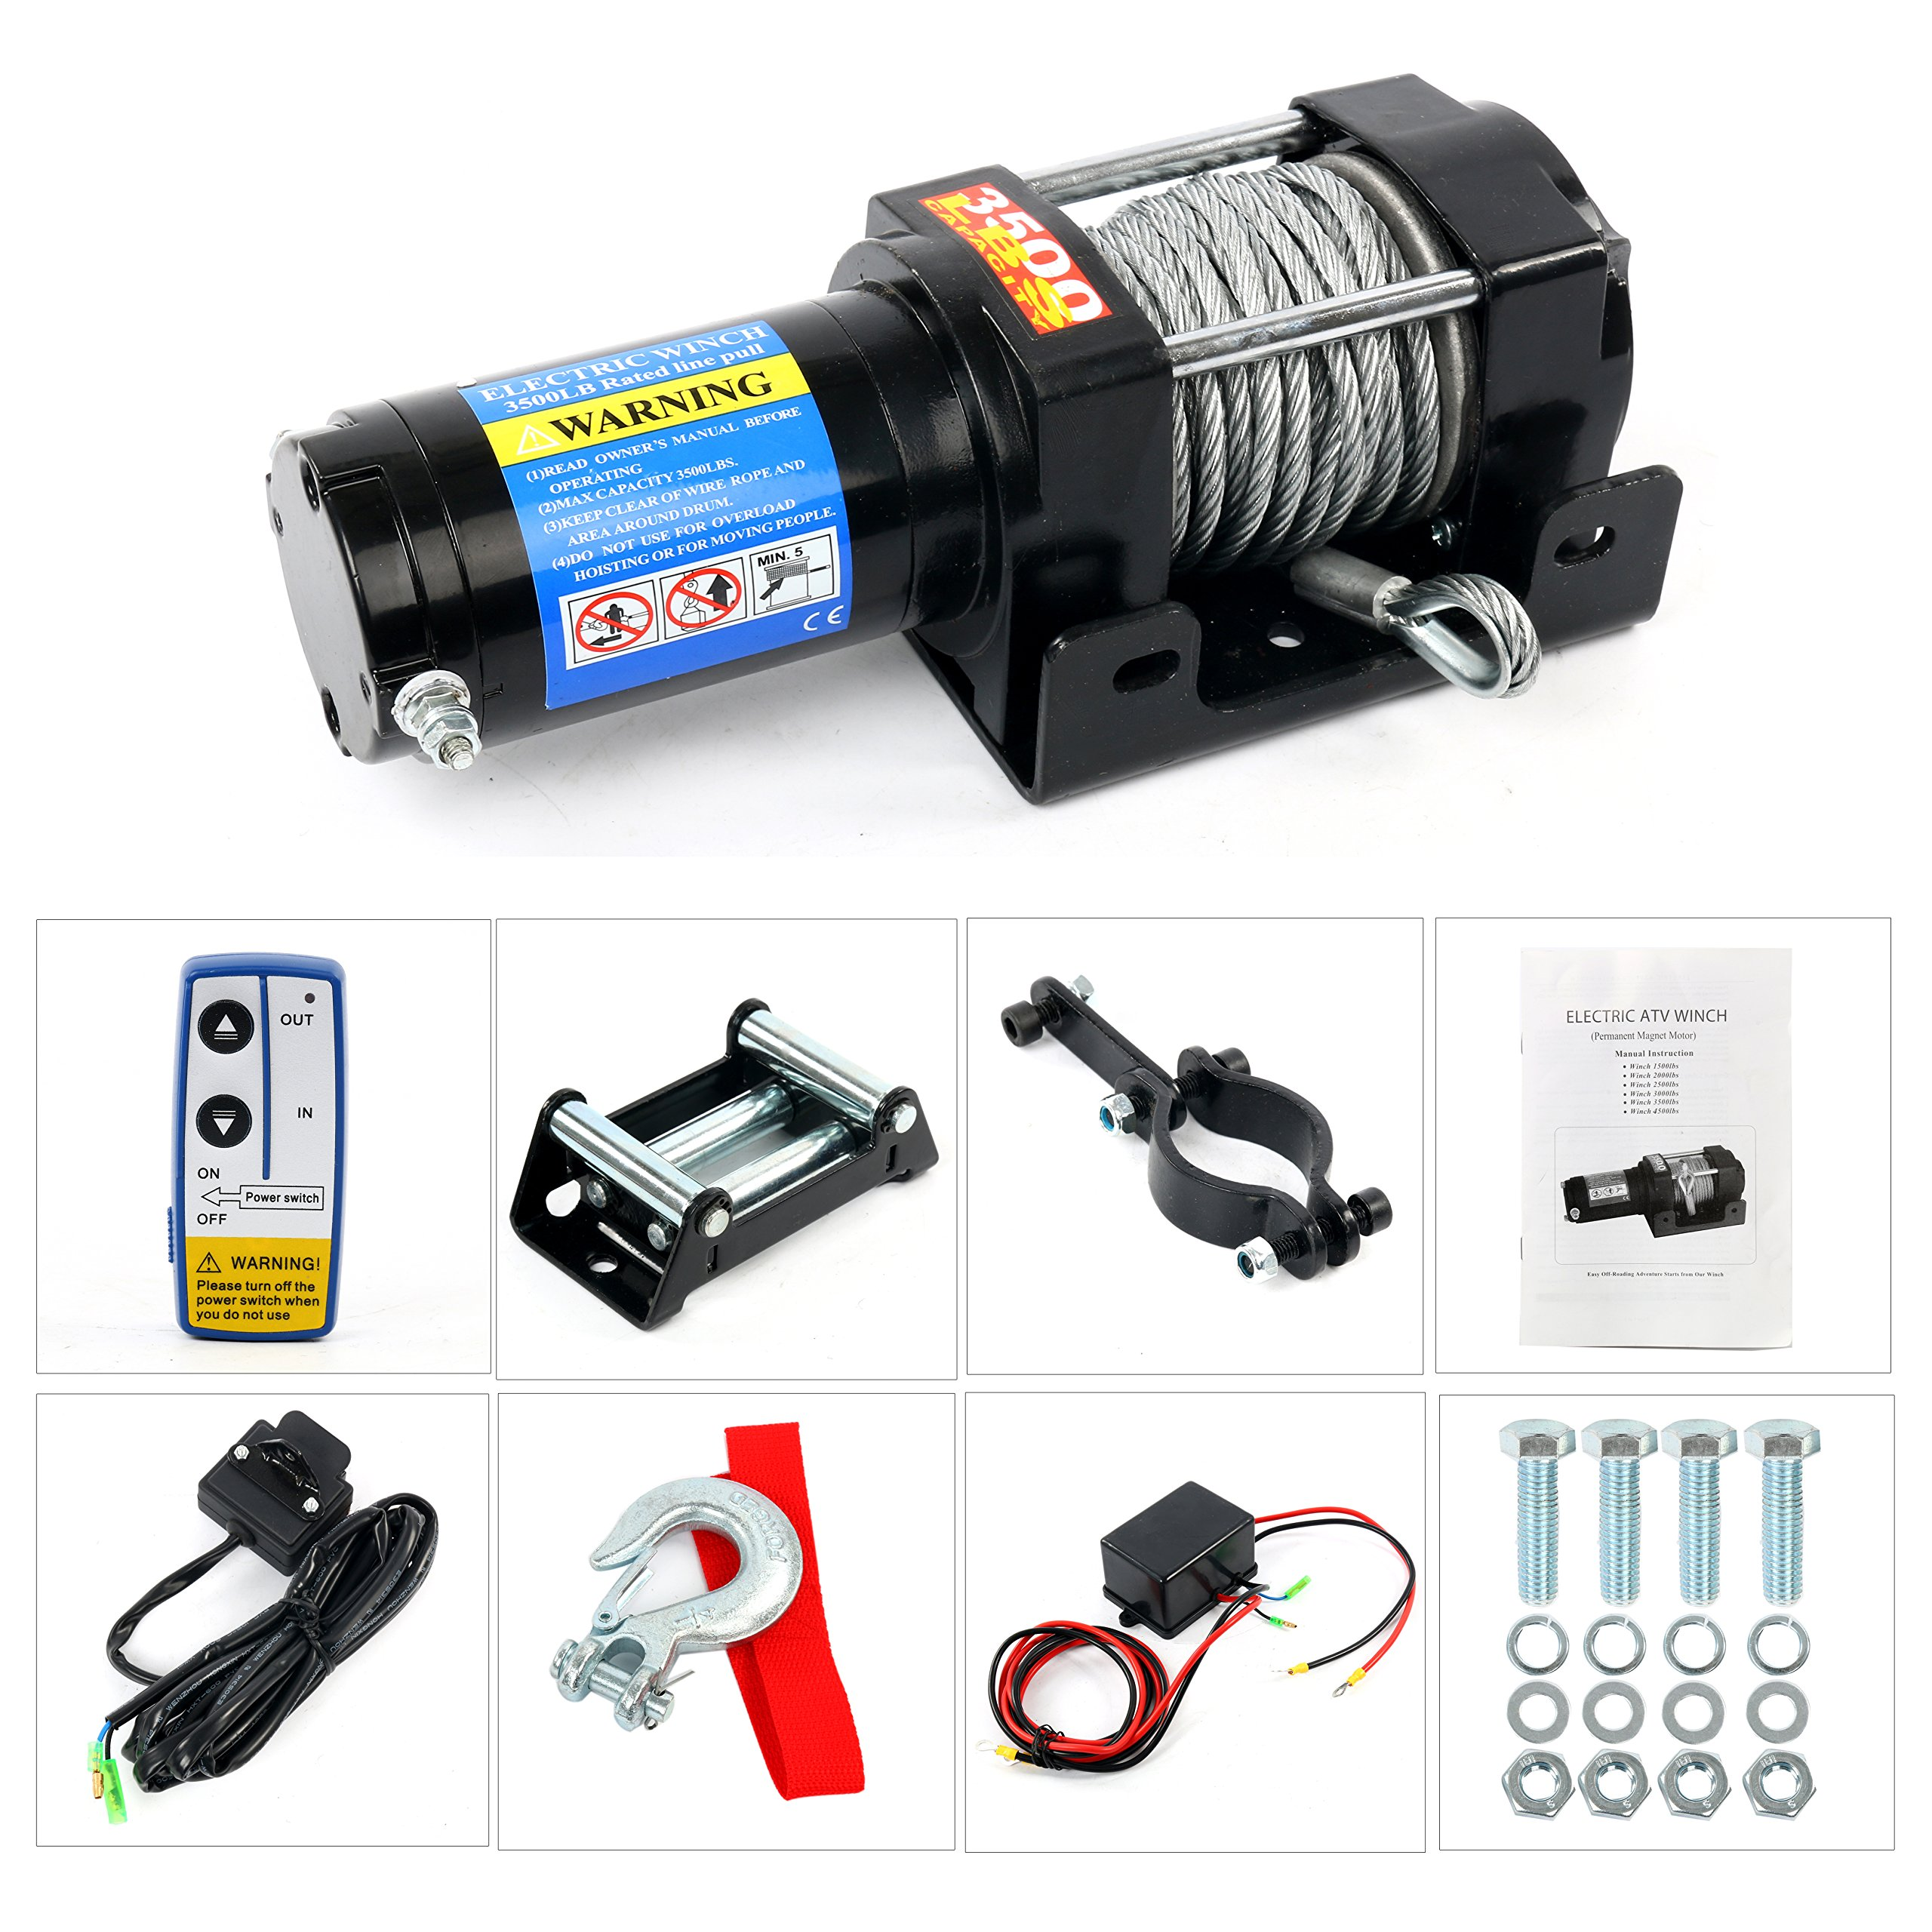 YaeTek 12V Winch 3500lbs/1591kg with Roller Fairlead Mounting Plate Electric Steel Cable Winch Kit, Handheld Remote Waterproof ATV Tow Boat Jeep Truck Trailer Offroad